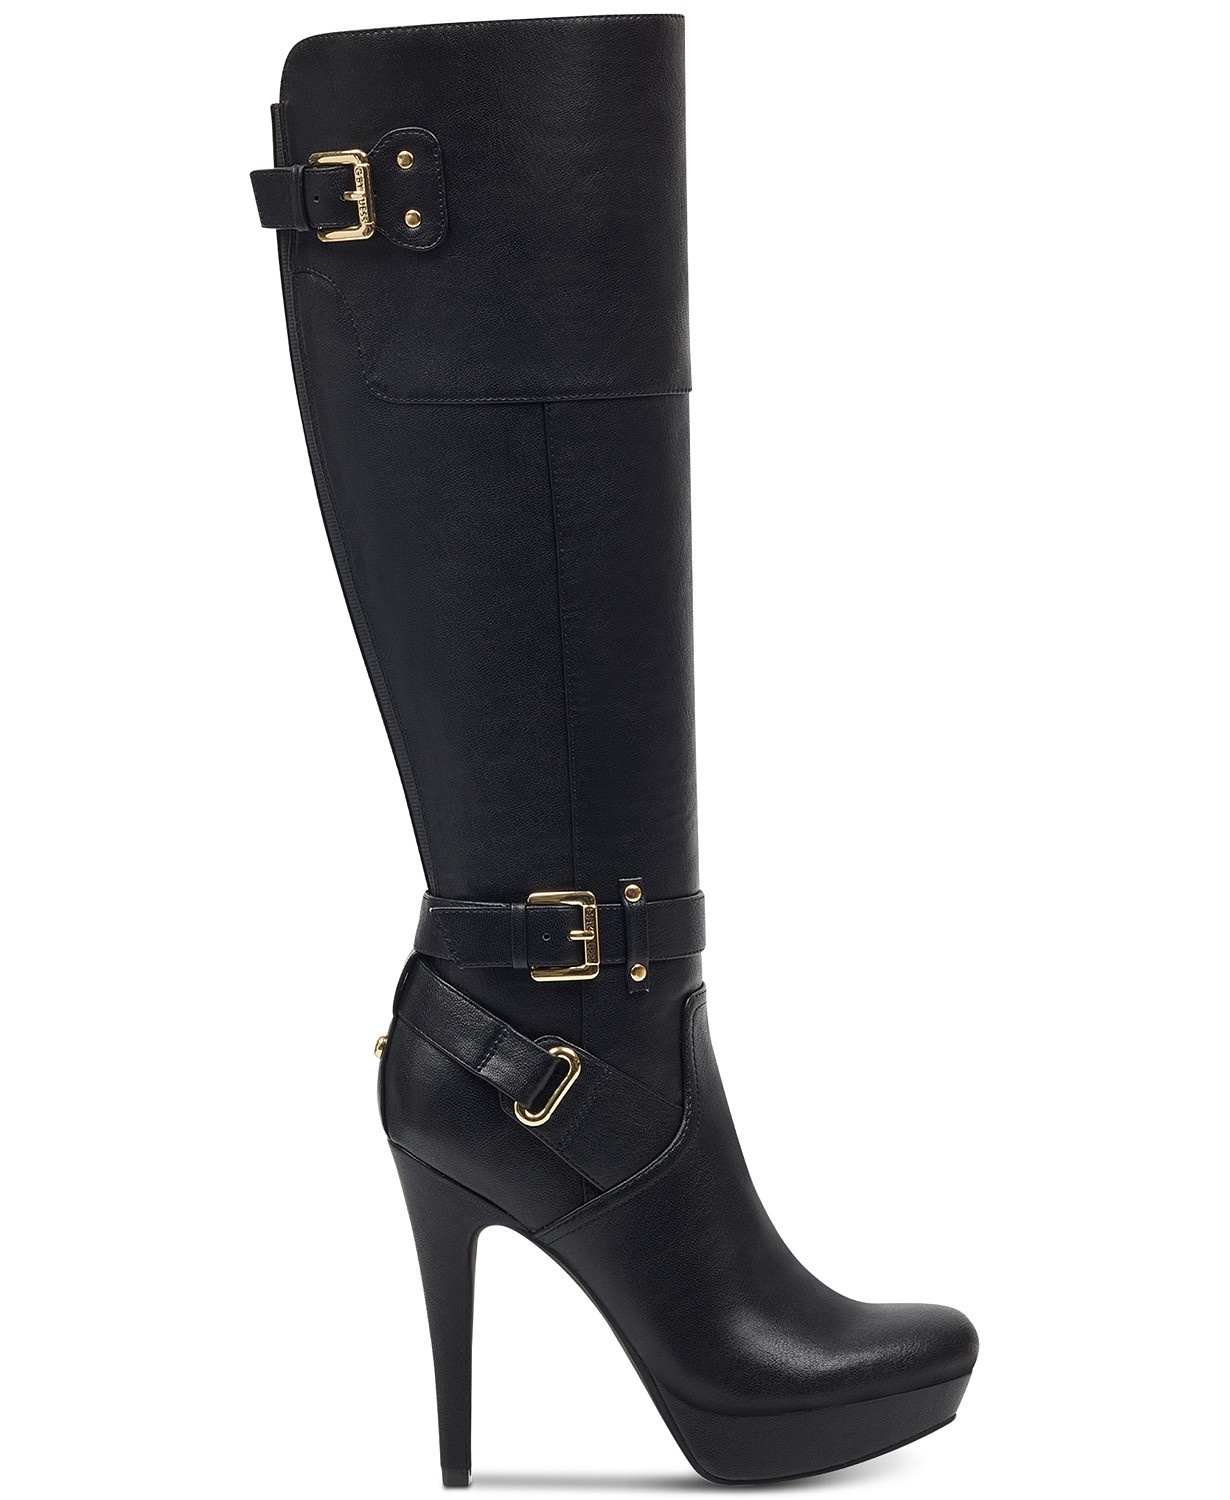 G by Guess knee high heeled boots